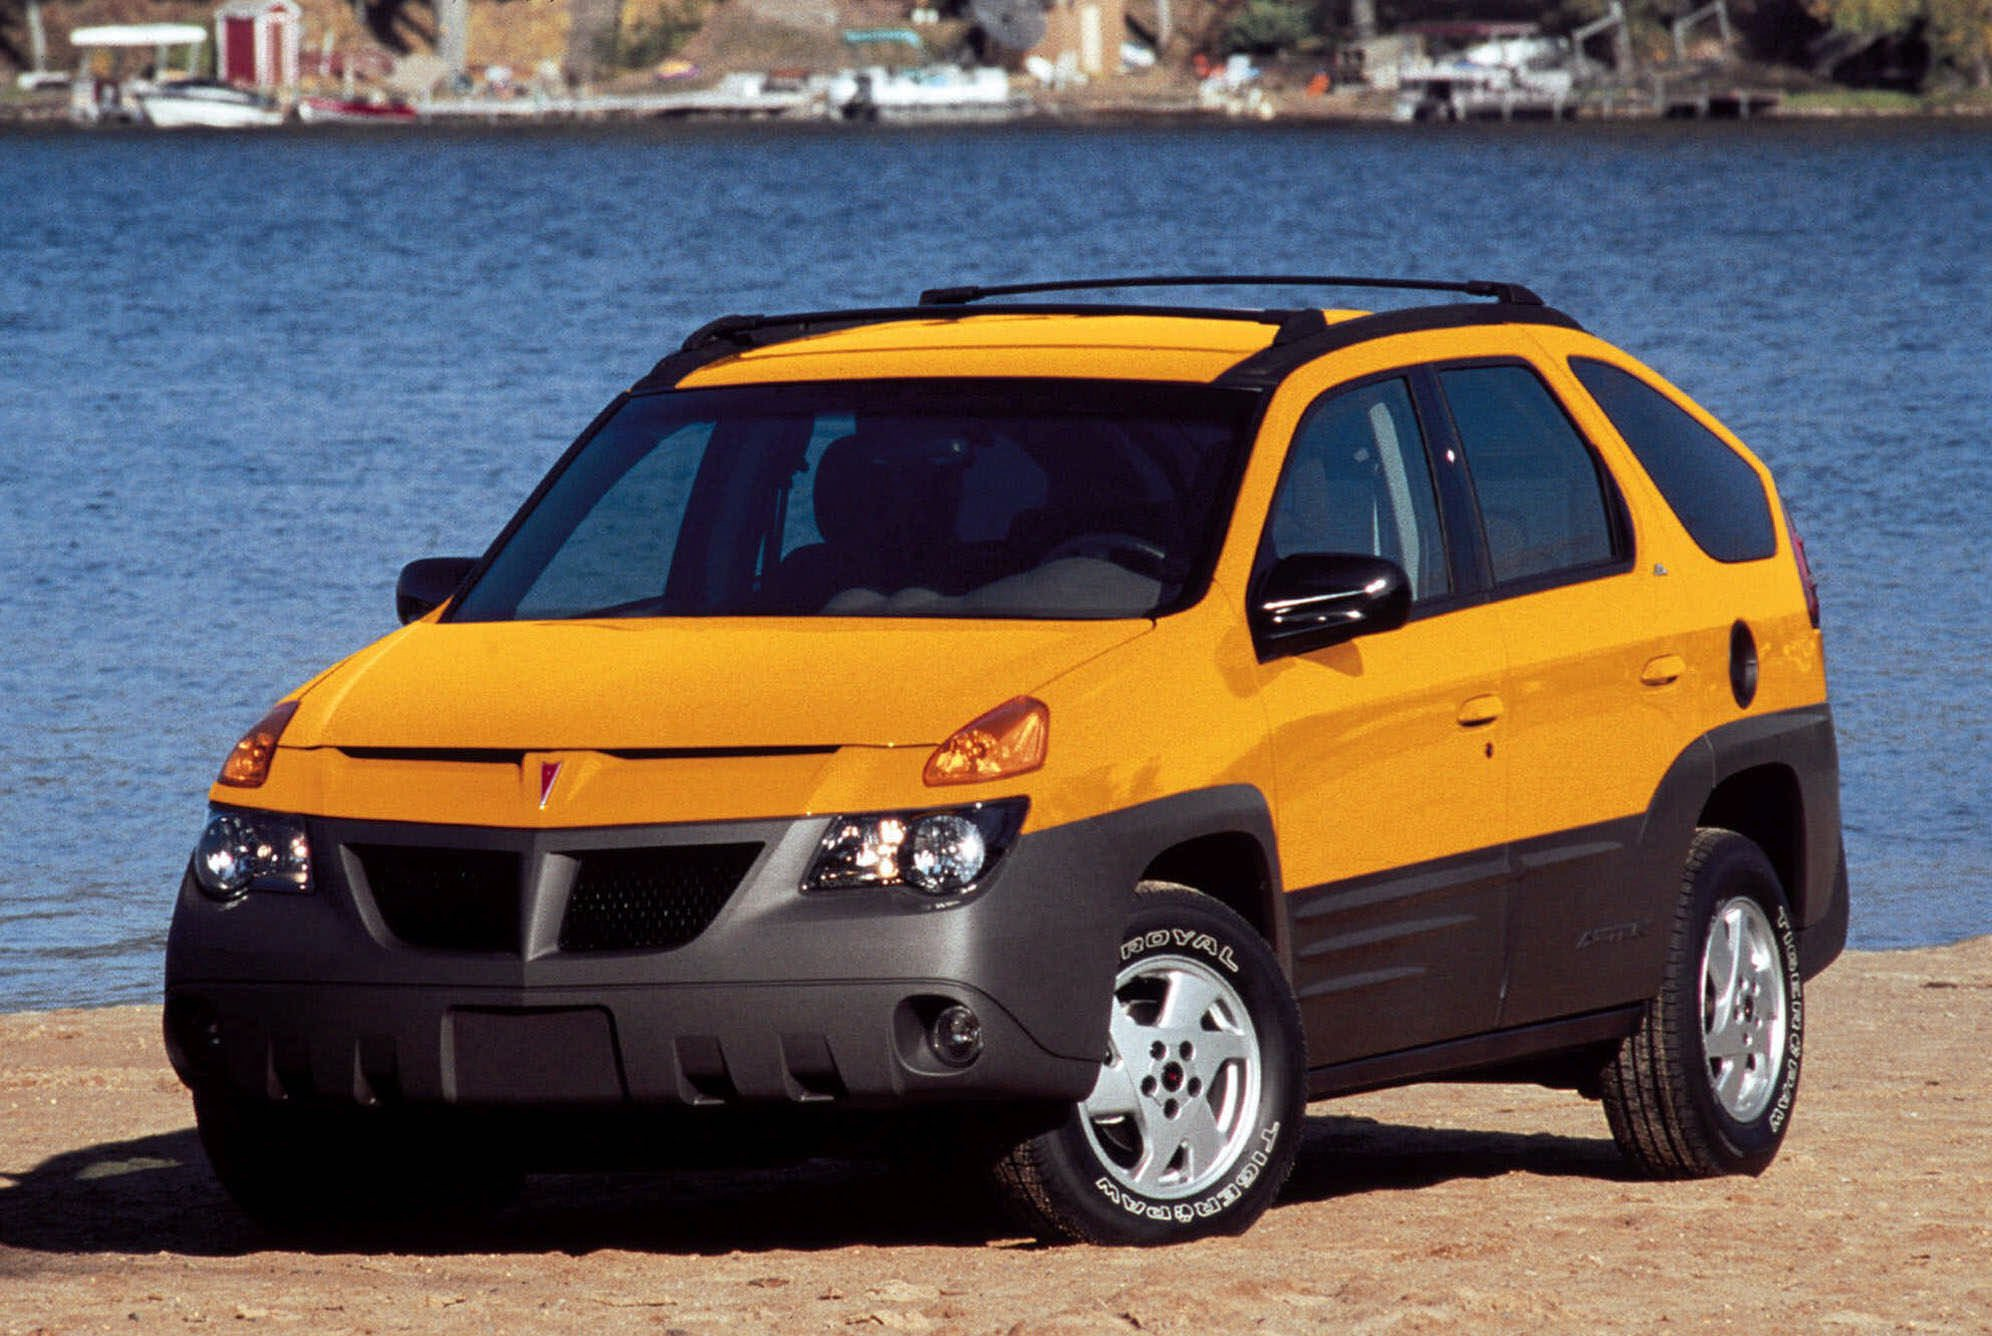 pontiac aztek gets top honors as the worst vehicle ever sold the blade. Black Bedroom Furniture Sets. Home Design Ideas